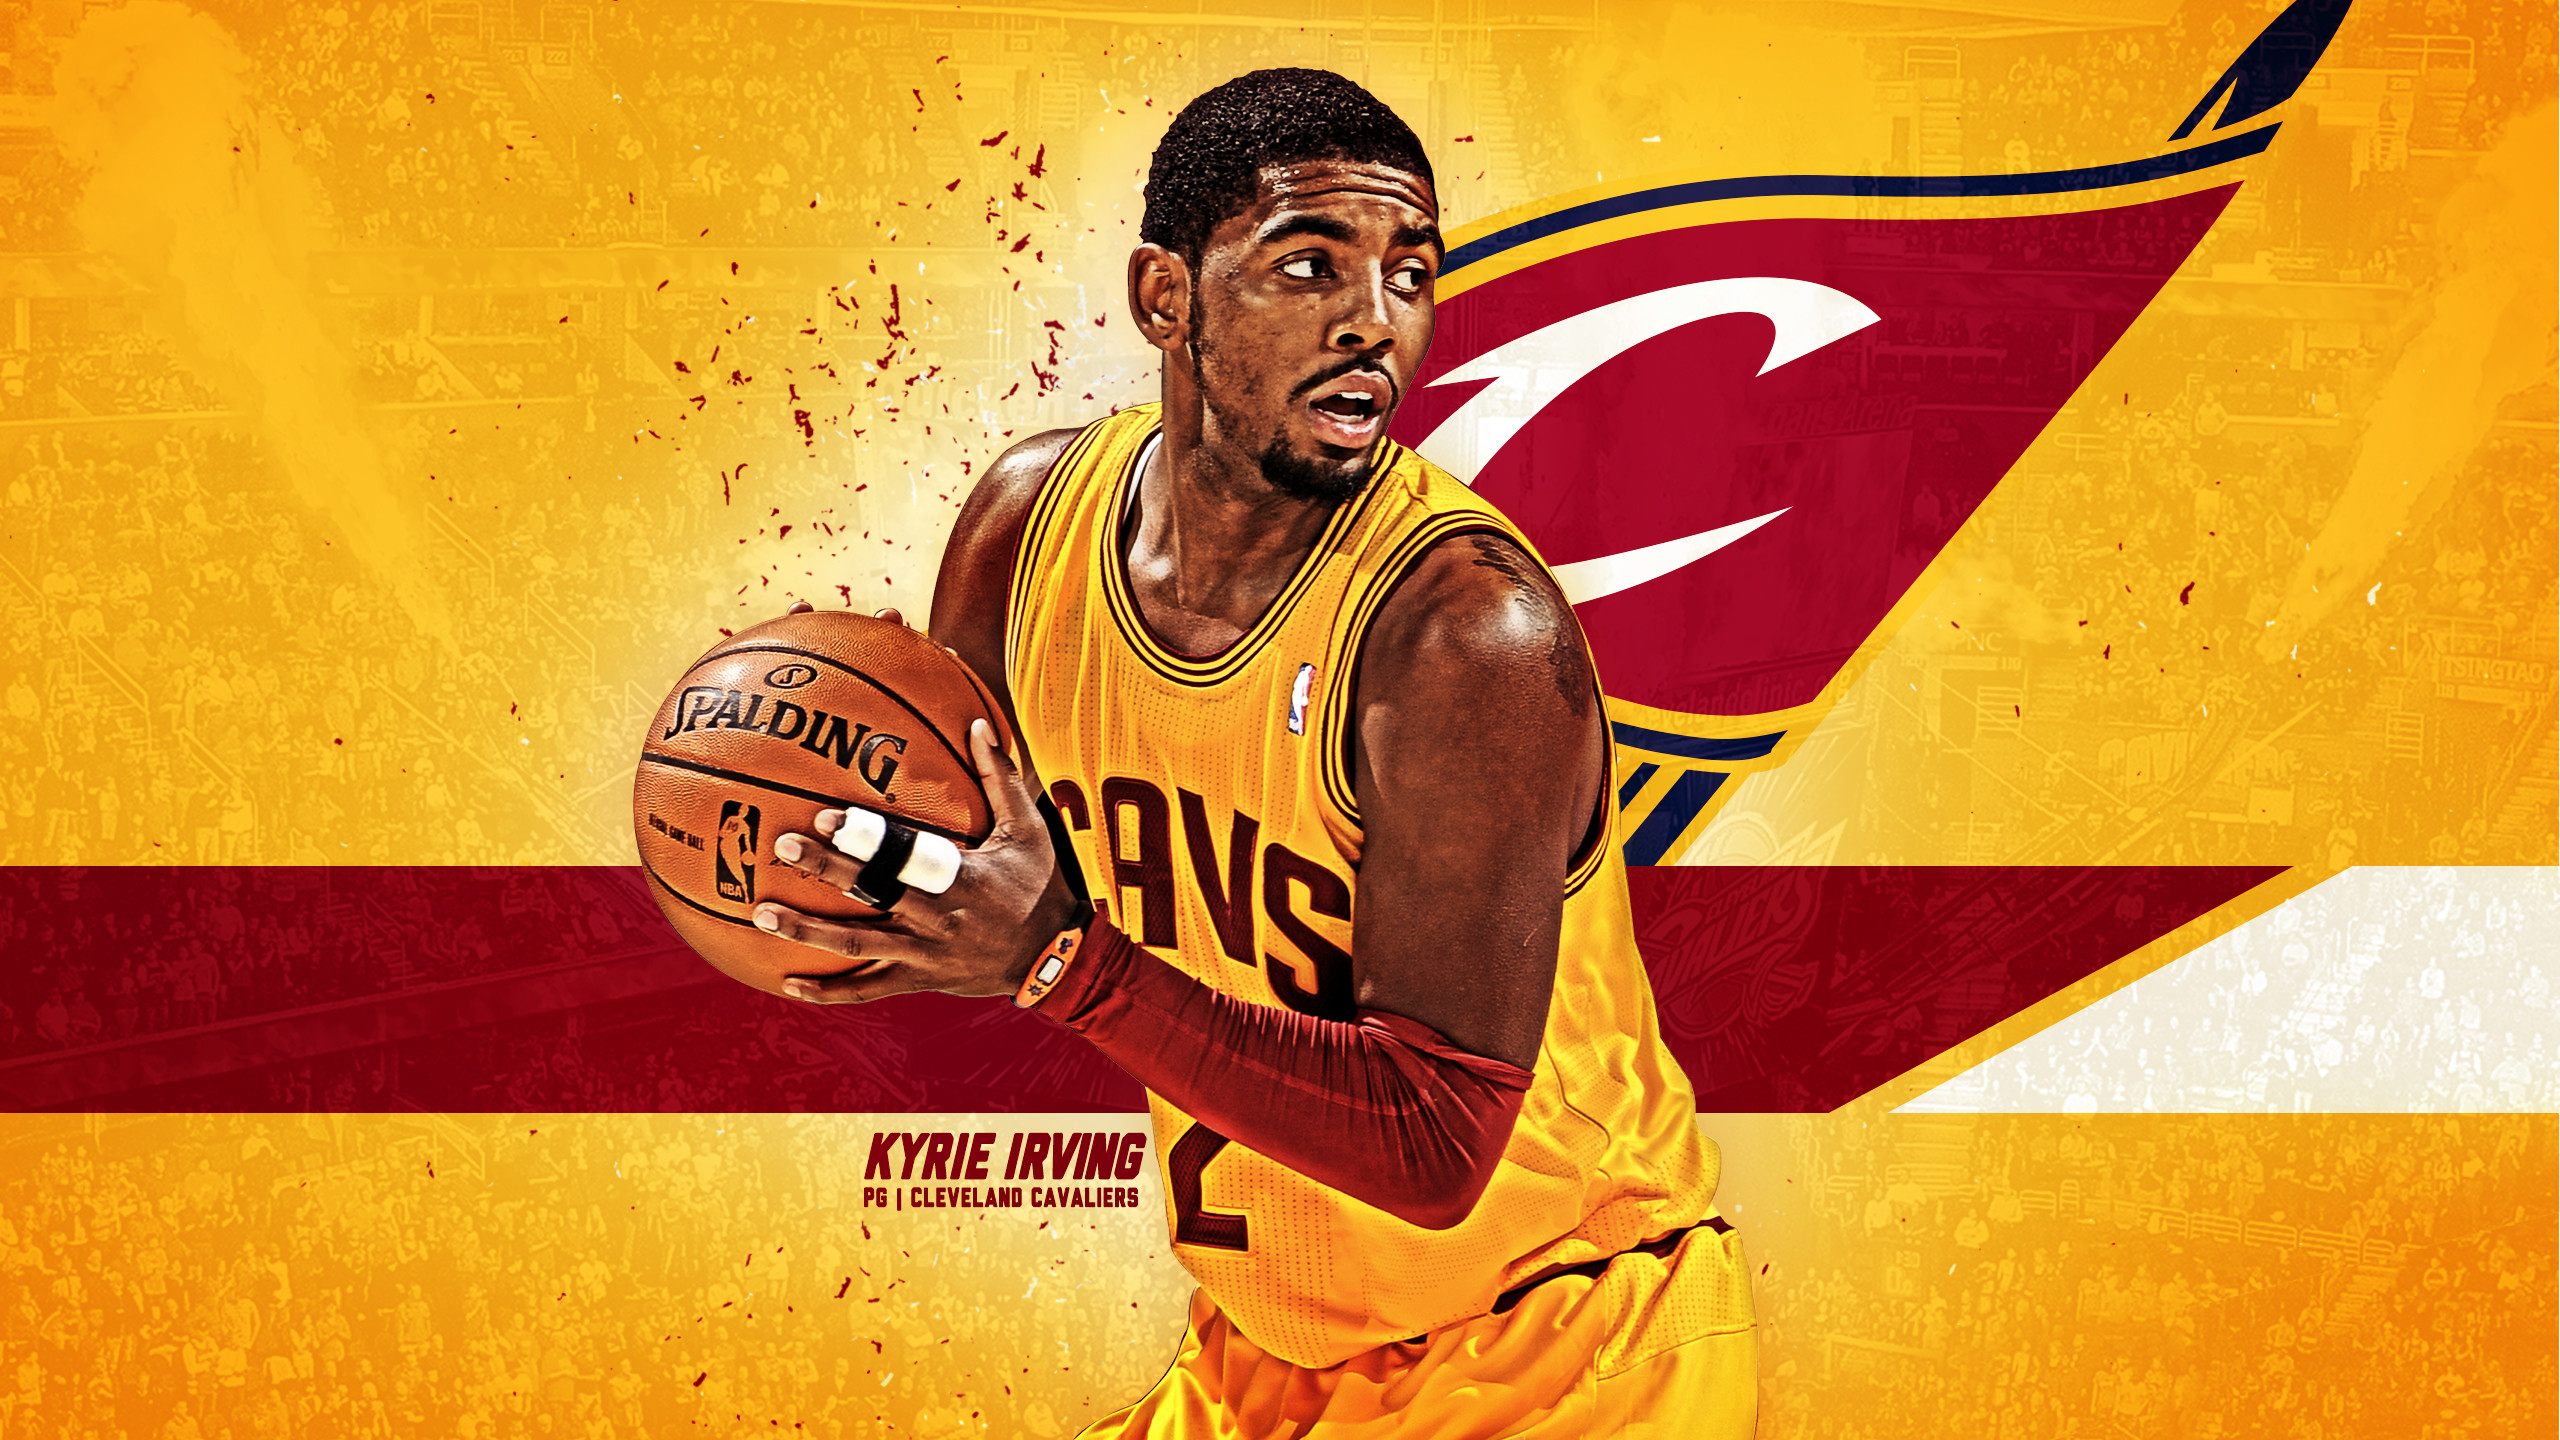 1080x1920 Download Wallpaper A Kyrie Irving Hd 98993